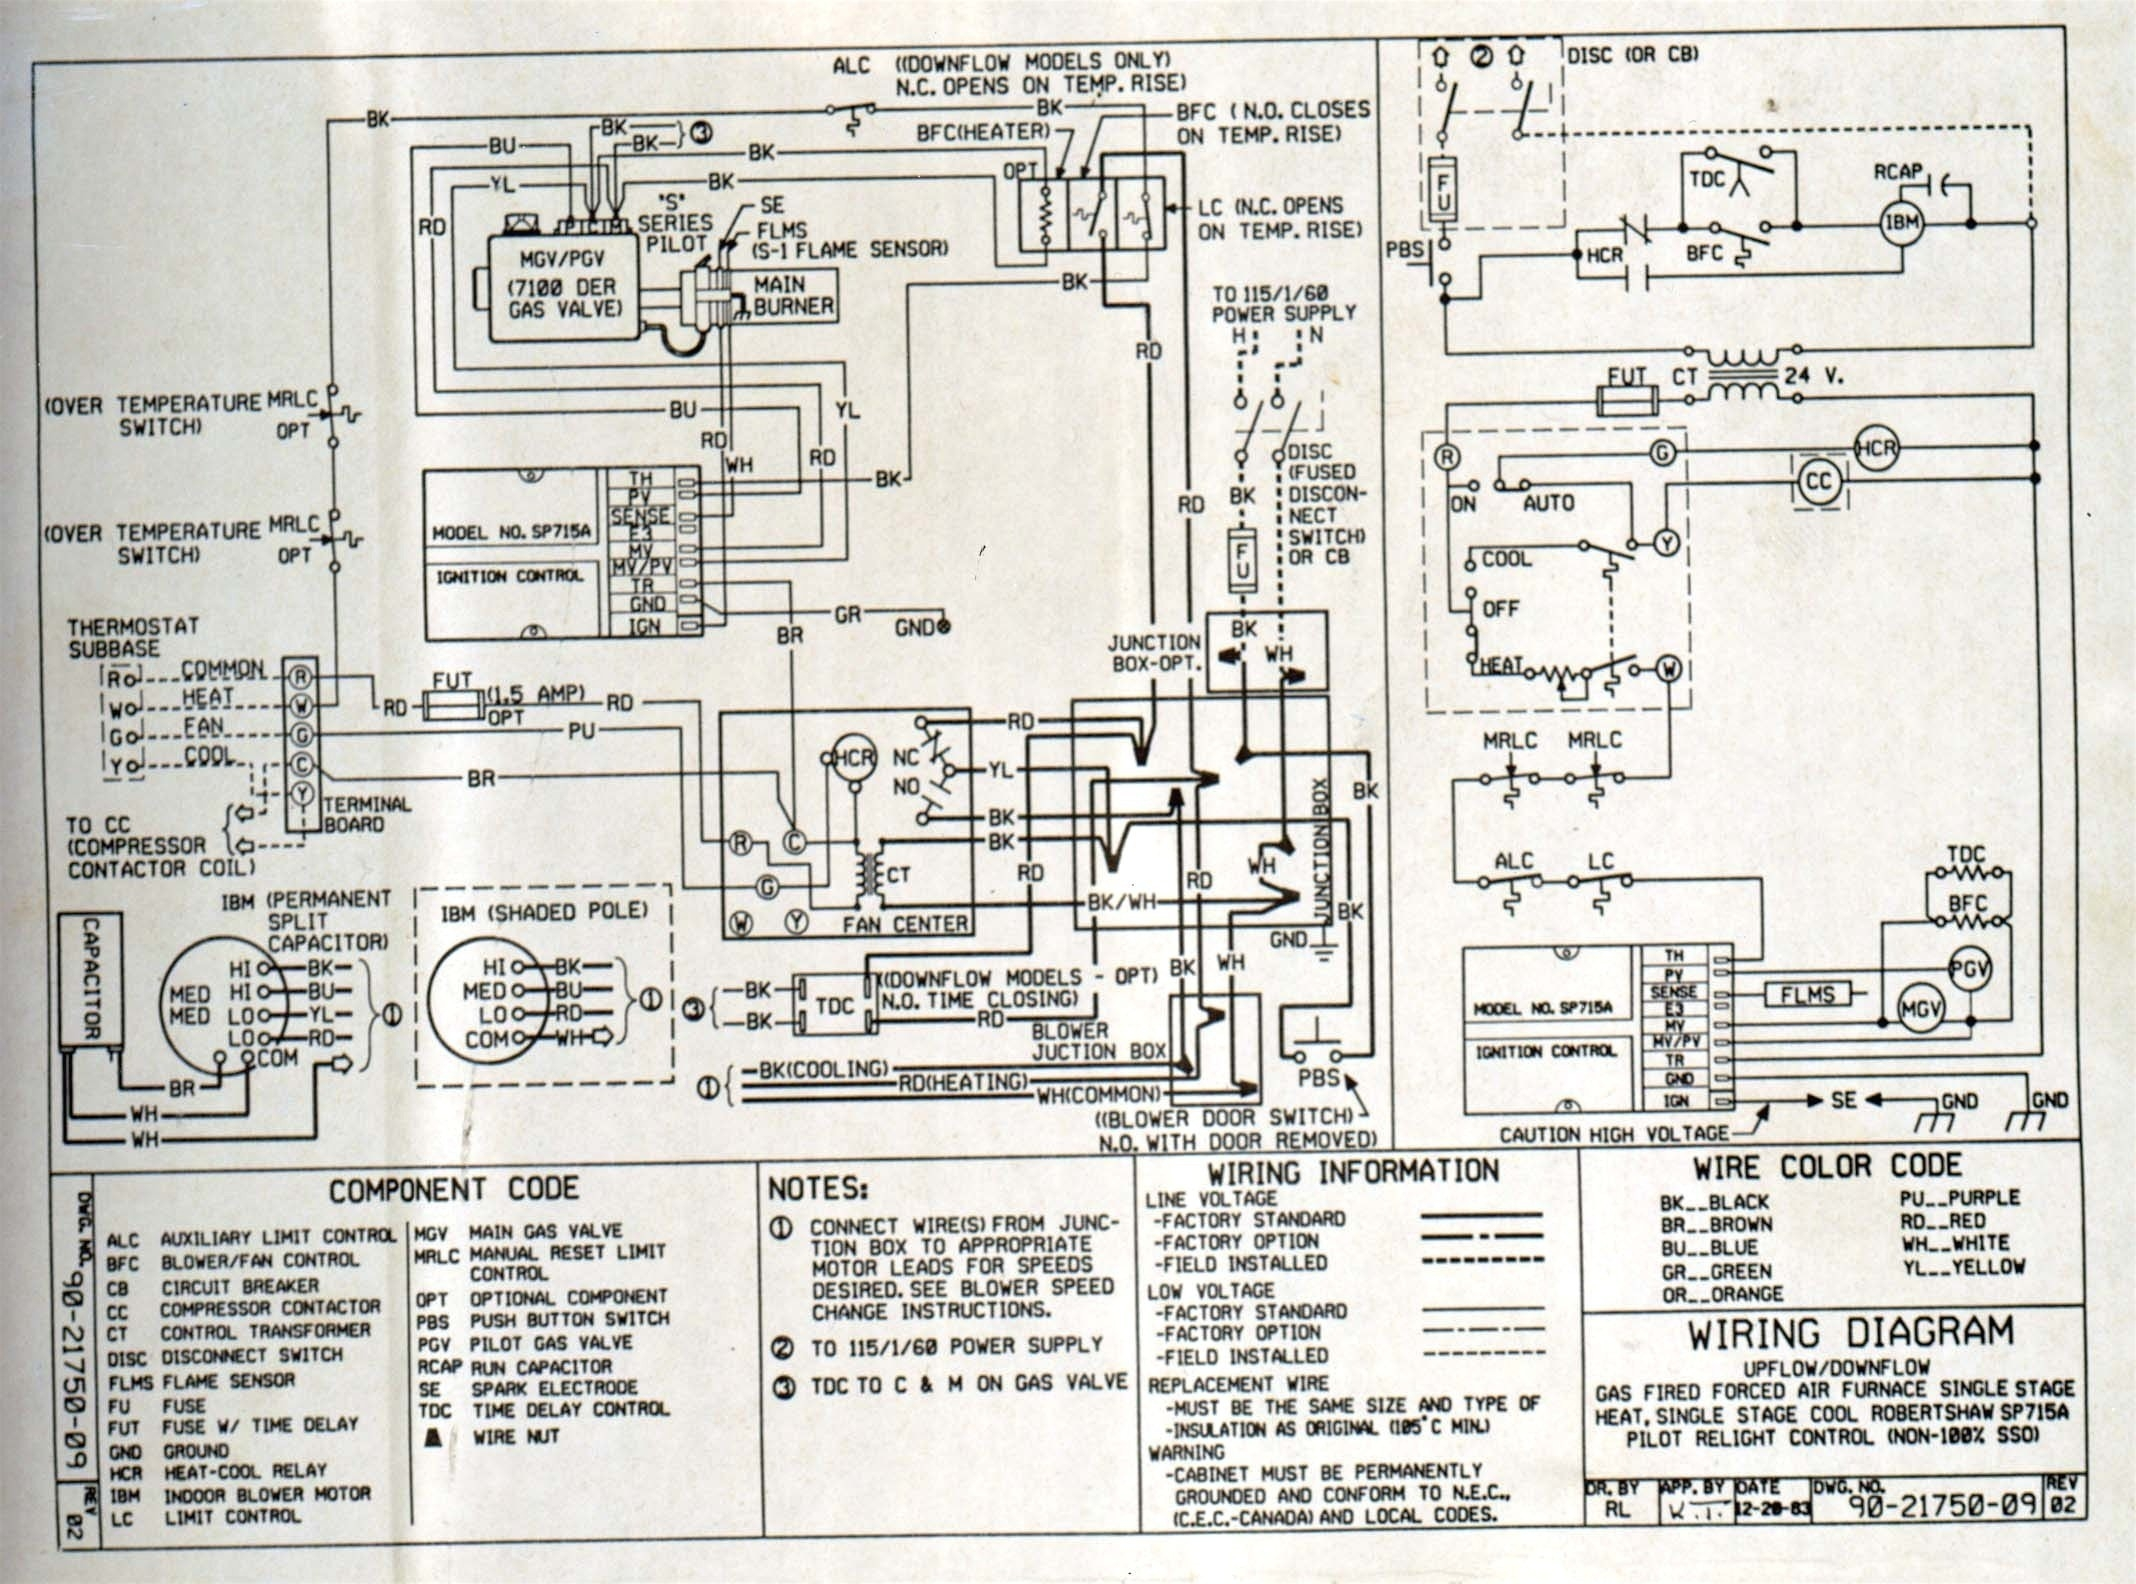 goodman air handler wiring diagram Download-Wiring Diagram Hvac thermostat New Goodman Gas Pack Wiring Diagram Data Exceptional Air Handler 14-p